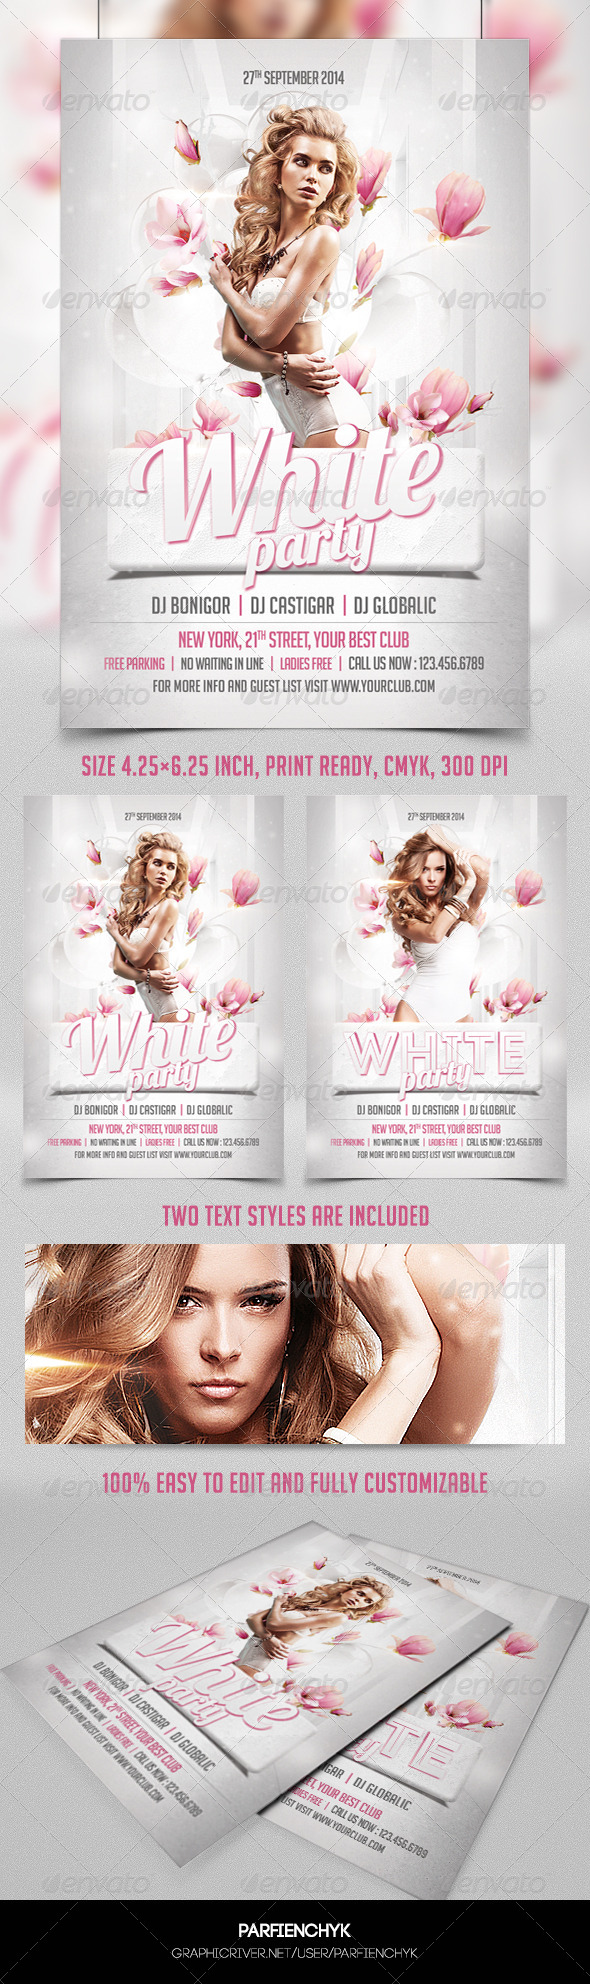 White Party Template - Clubs & Parties Events